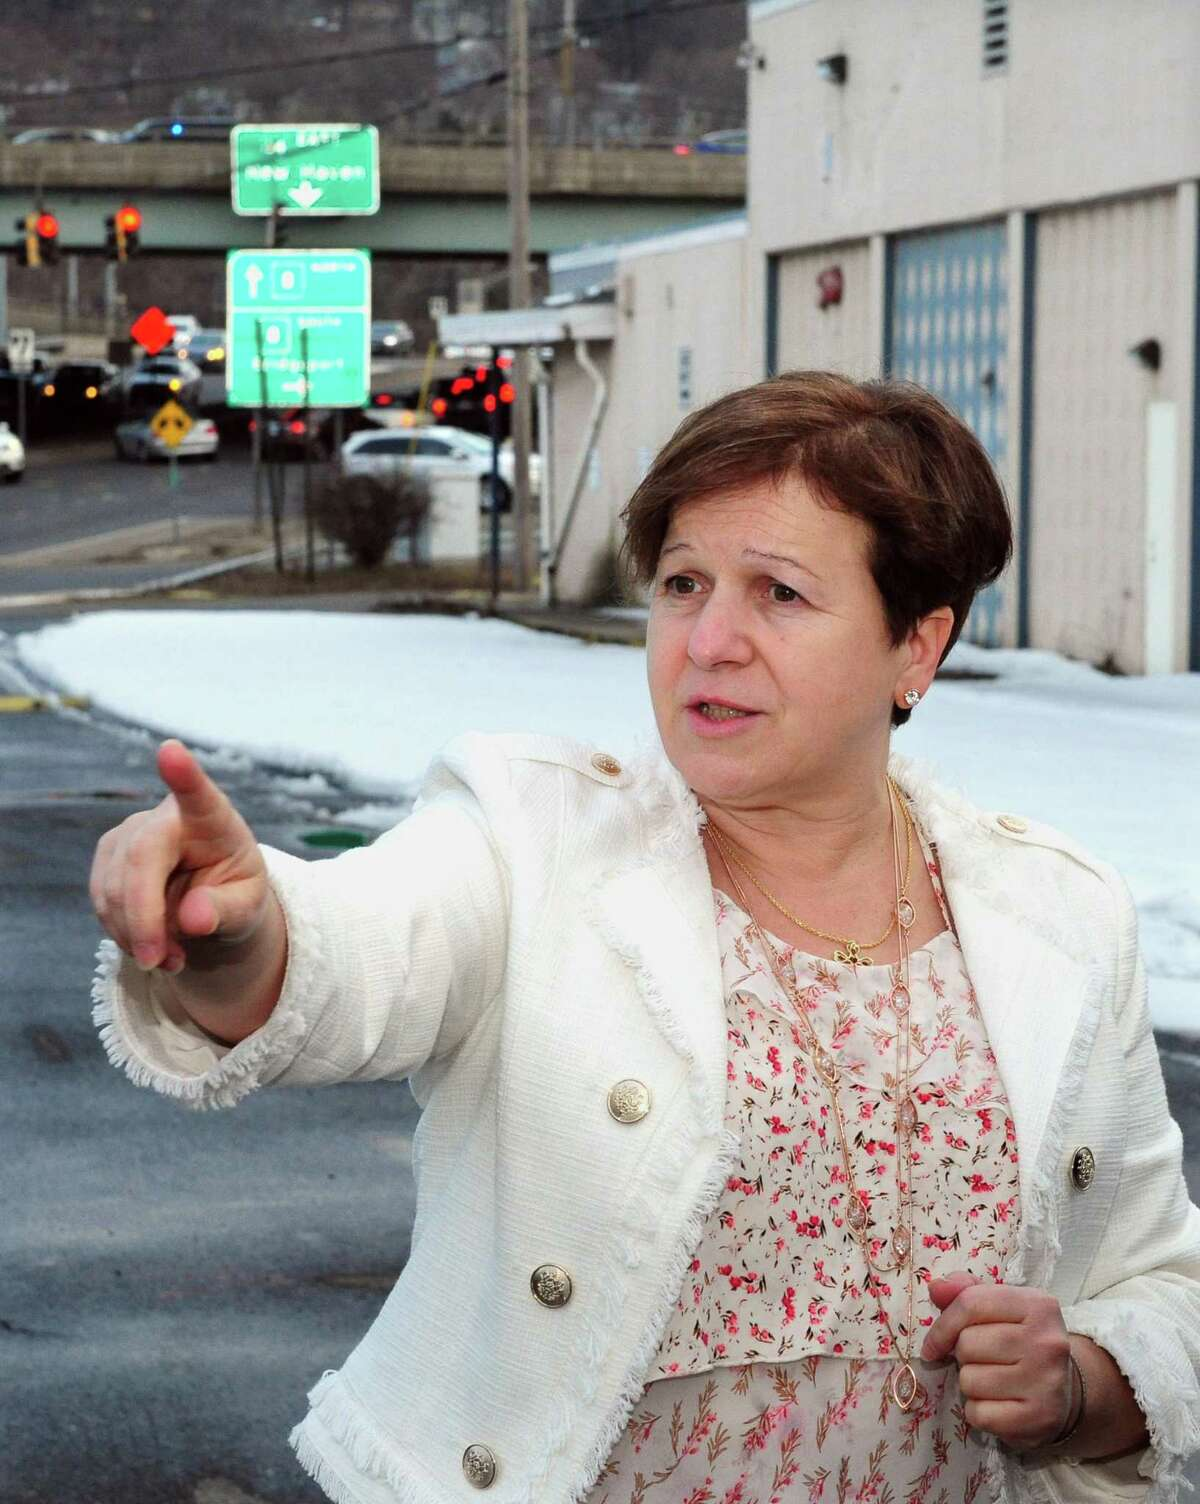 Derby Mayor Anita Dugatto stands in front of the former Lifetouch building at 90 Main Street in Derby, Conn. on Wednesday Feb. 22, 2017. A Shelton developer proposed to the Derby P&Z committee in making the former Lifetouch building the gateway to a redeveloped Main Street. He suggested putting a hotel, or a community college and manufacturing plant on the site which is across from Home Depot.